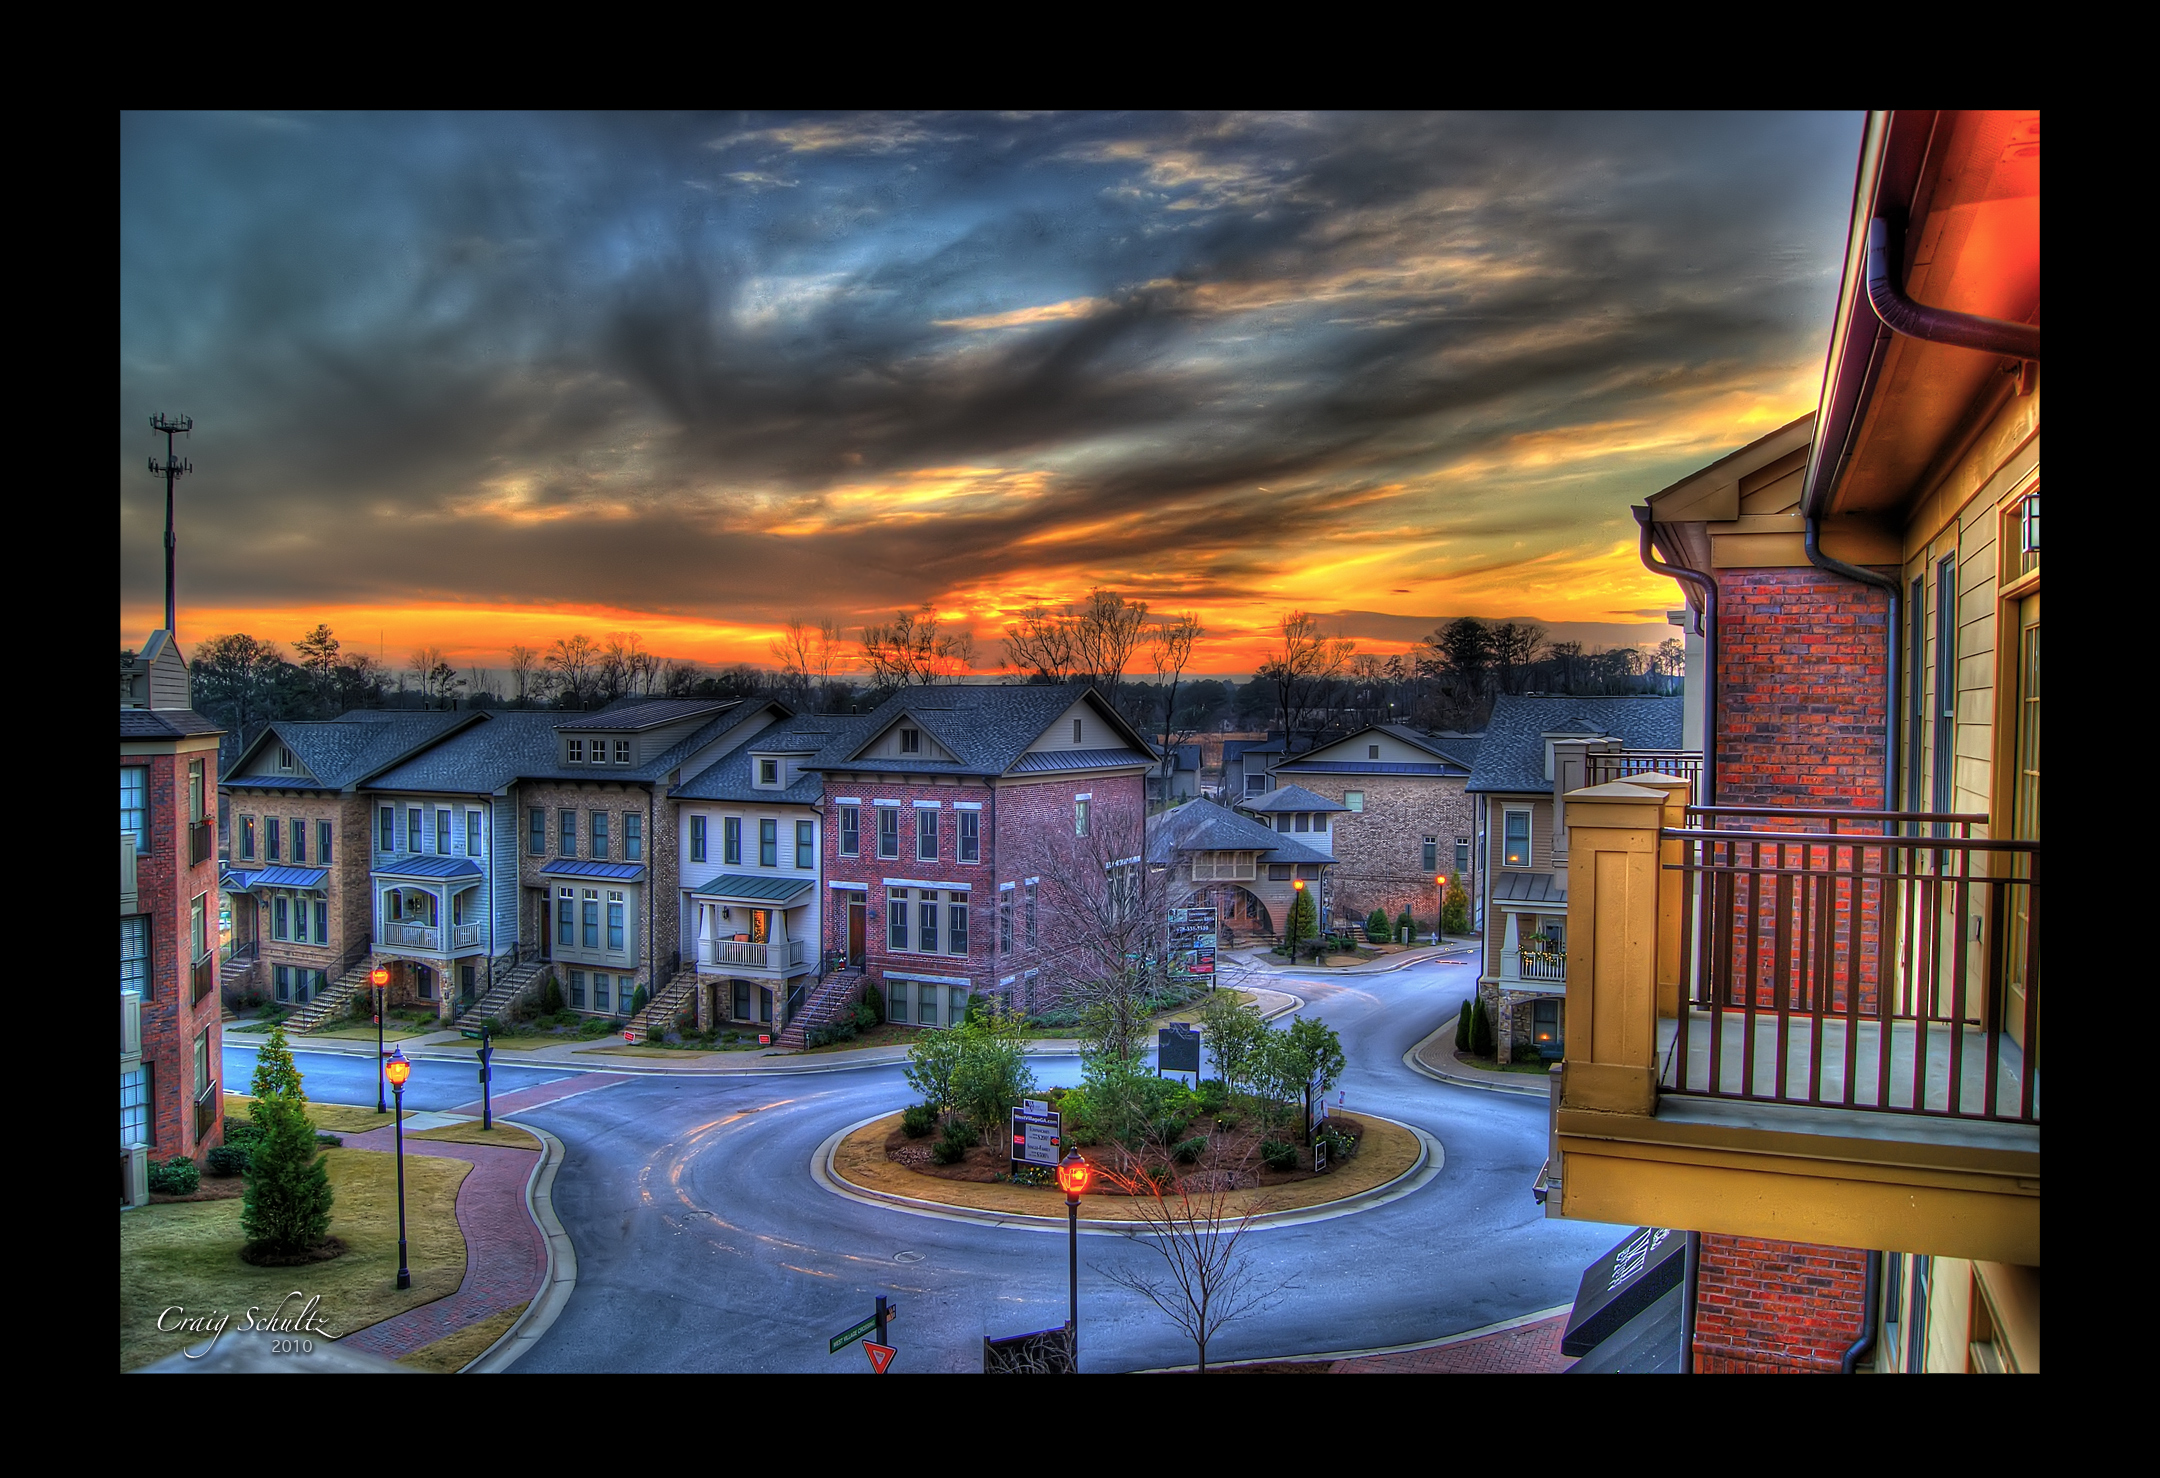 West Village, Atlanta HDR by dx